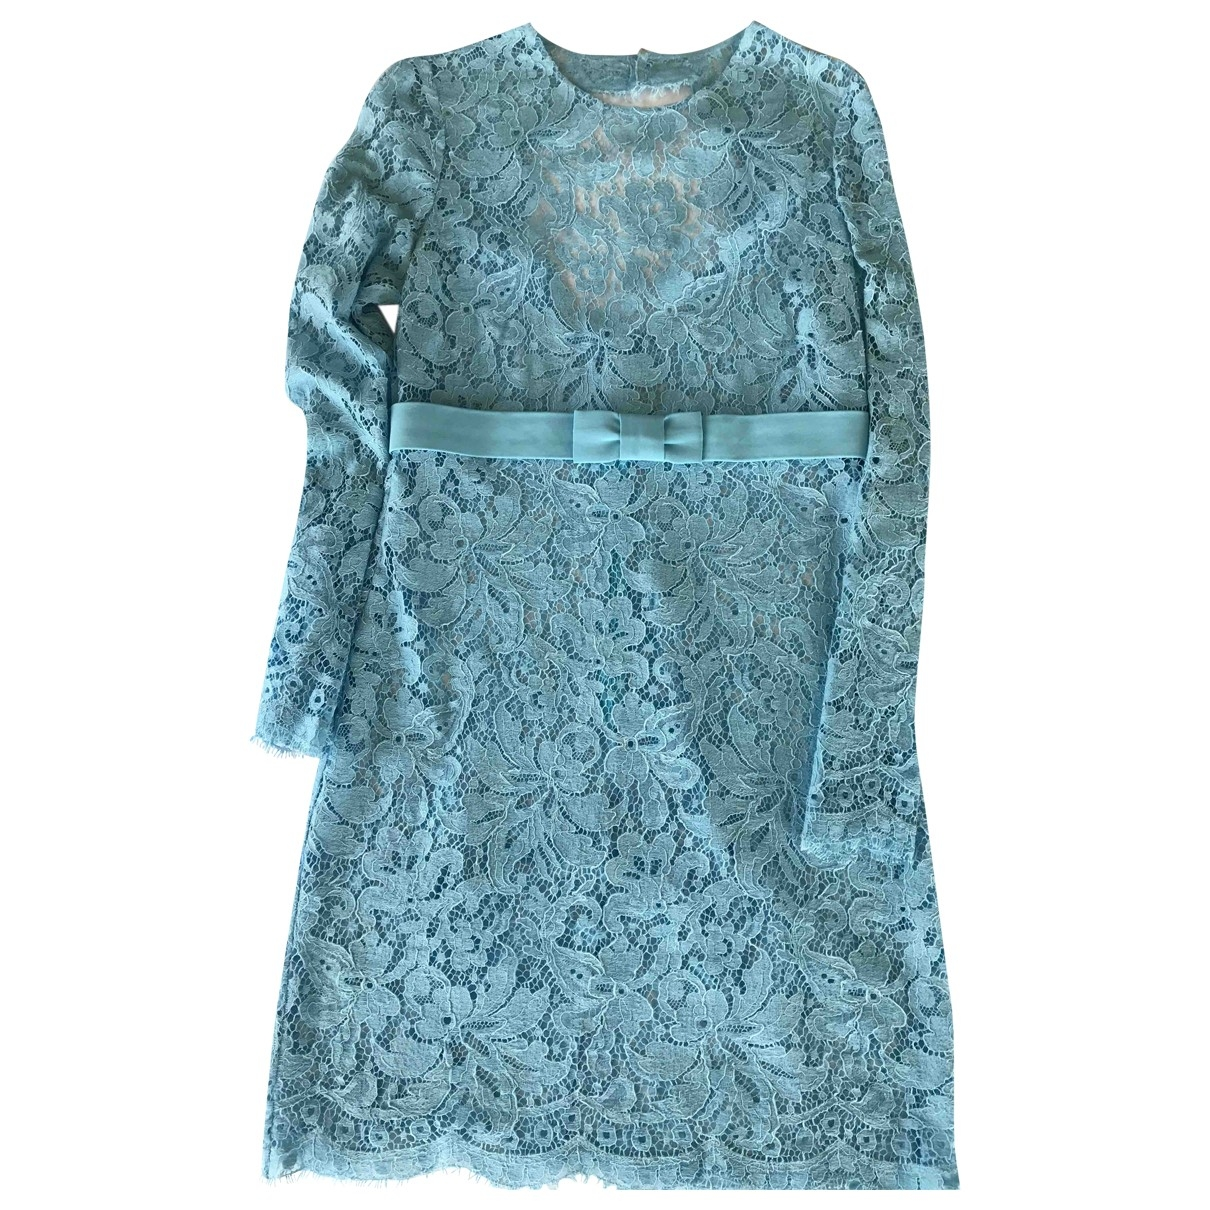 Emilio Pucci \N Blue Lace dress for Women 44 IT